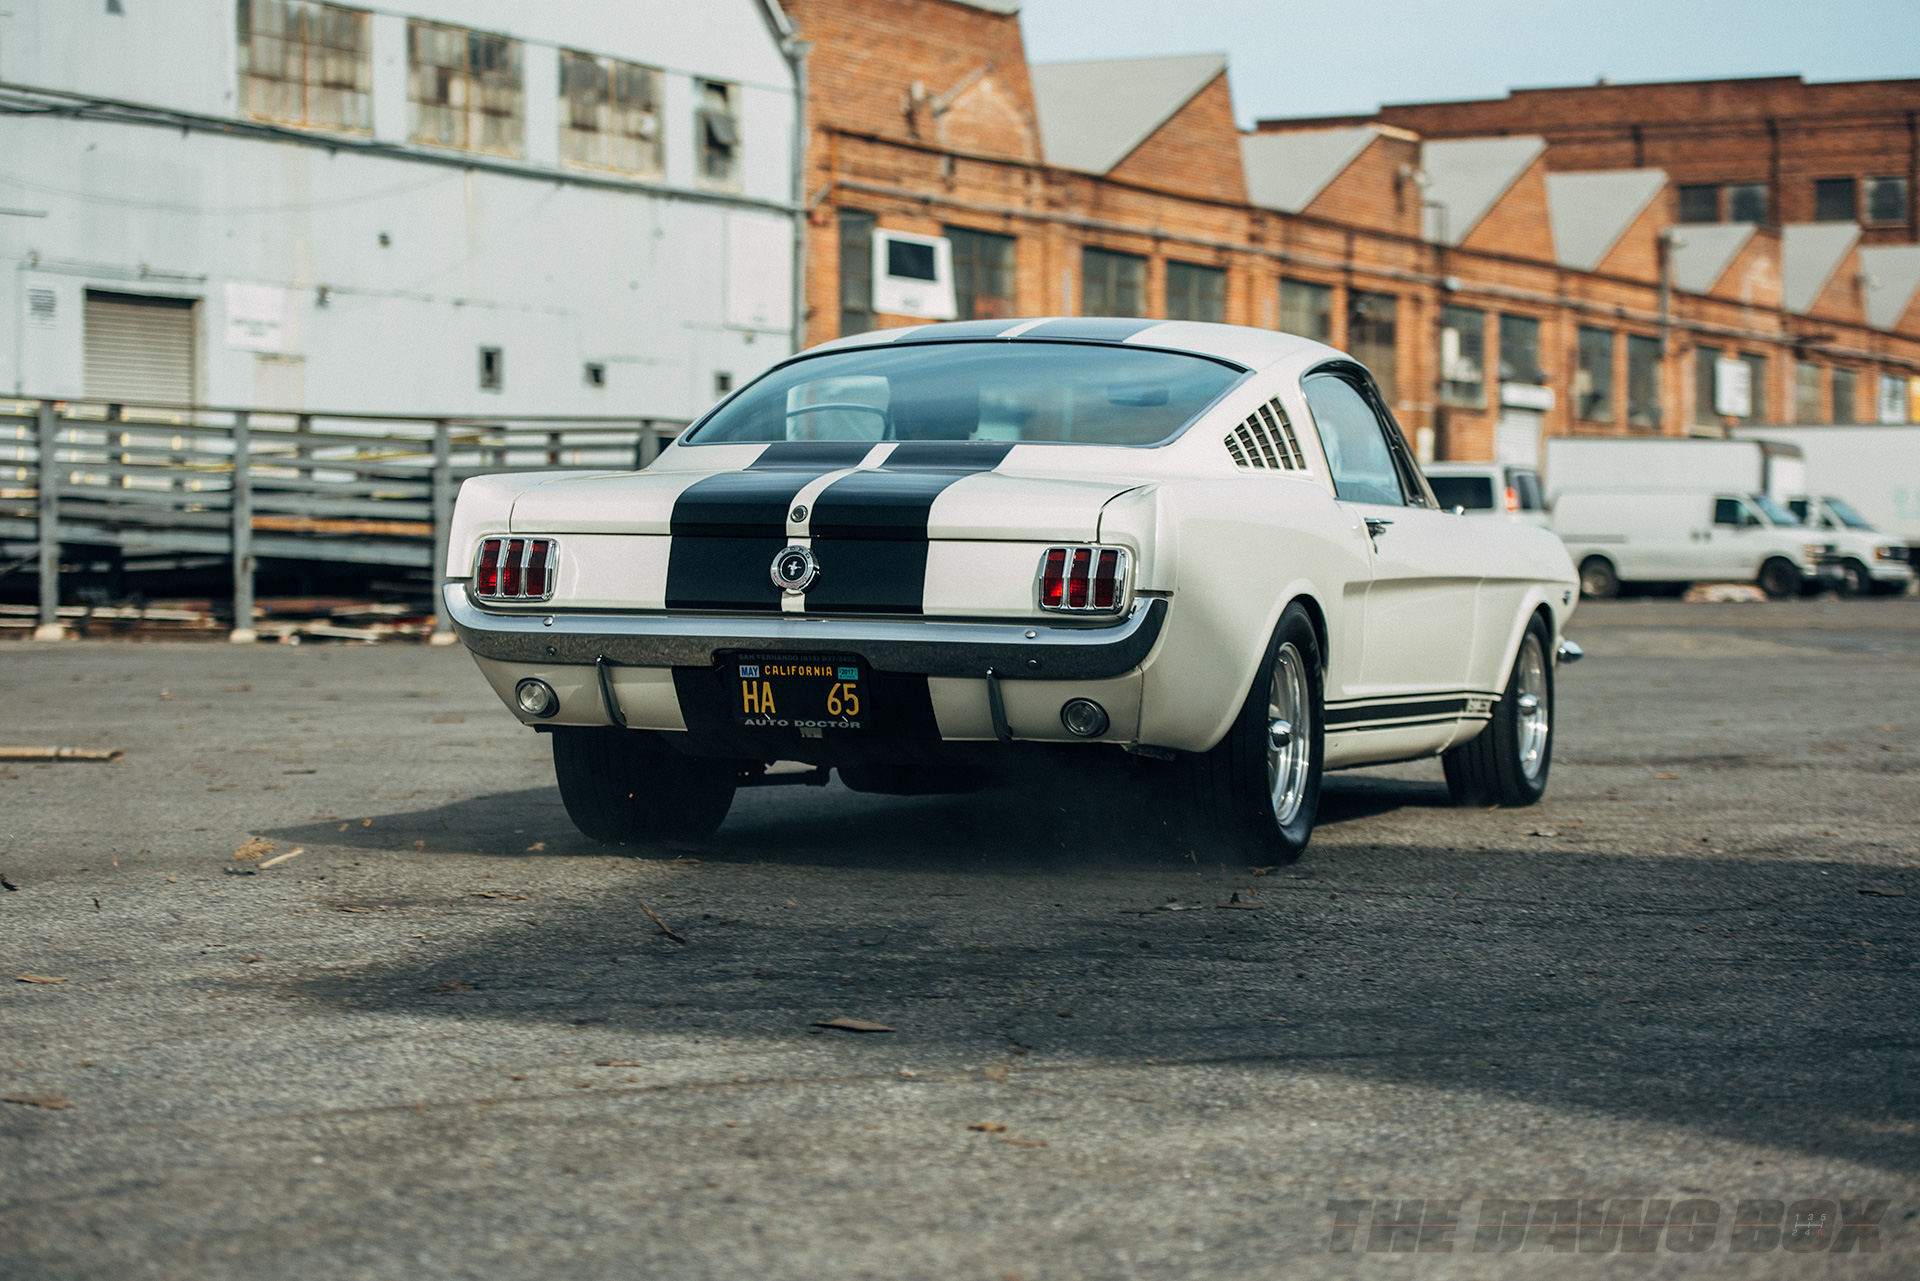 Back view of the White 1965 Mustang G.T. 350 with black stripes driving away in front of industrial buildings